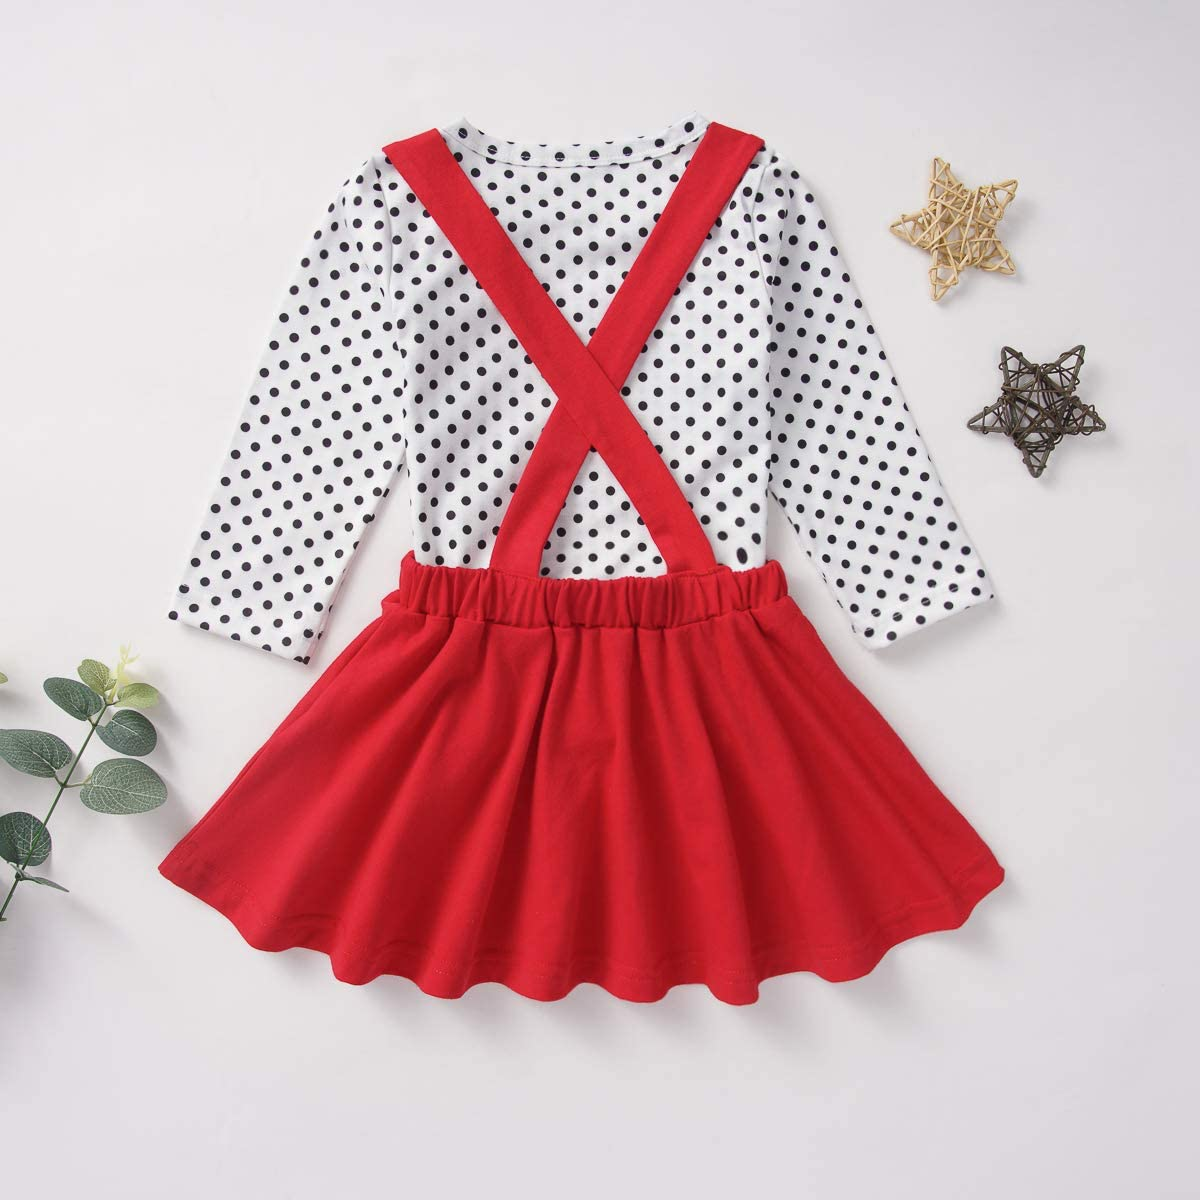 6M-5T Toddler Baby Girl Valentines Day Outfit Long Sleeve Dot Heart Shirt Top+Suspender Strap Red Skirts Set